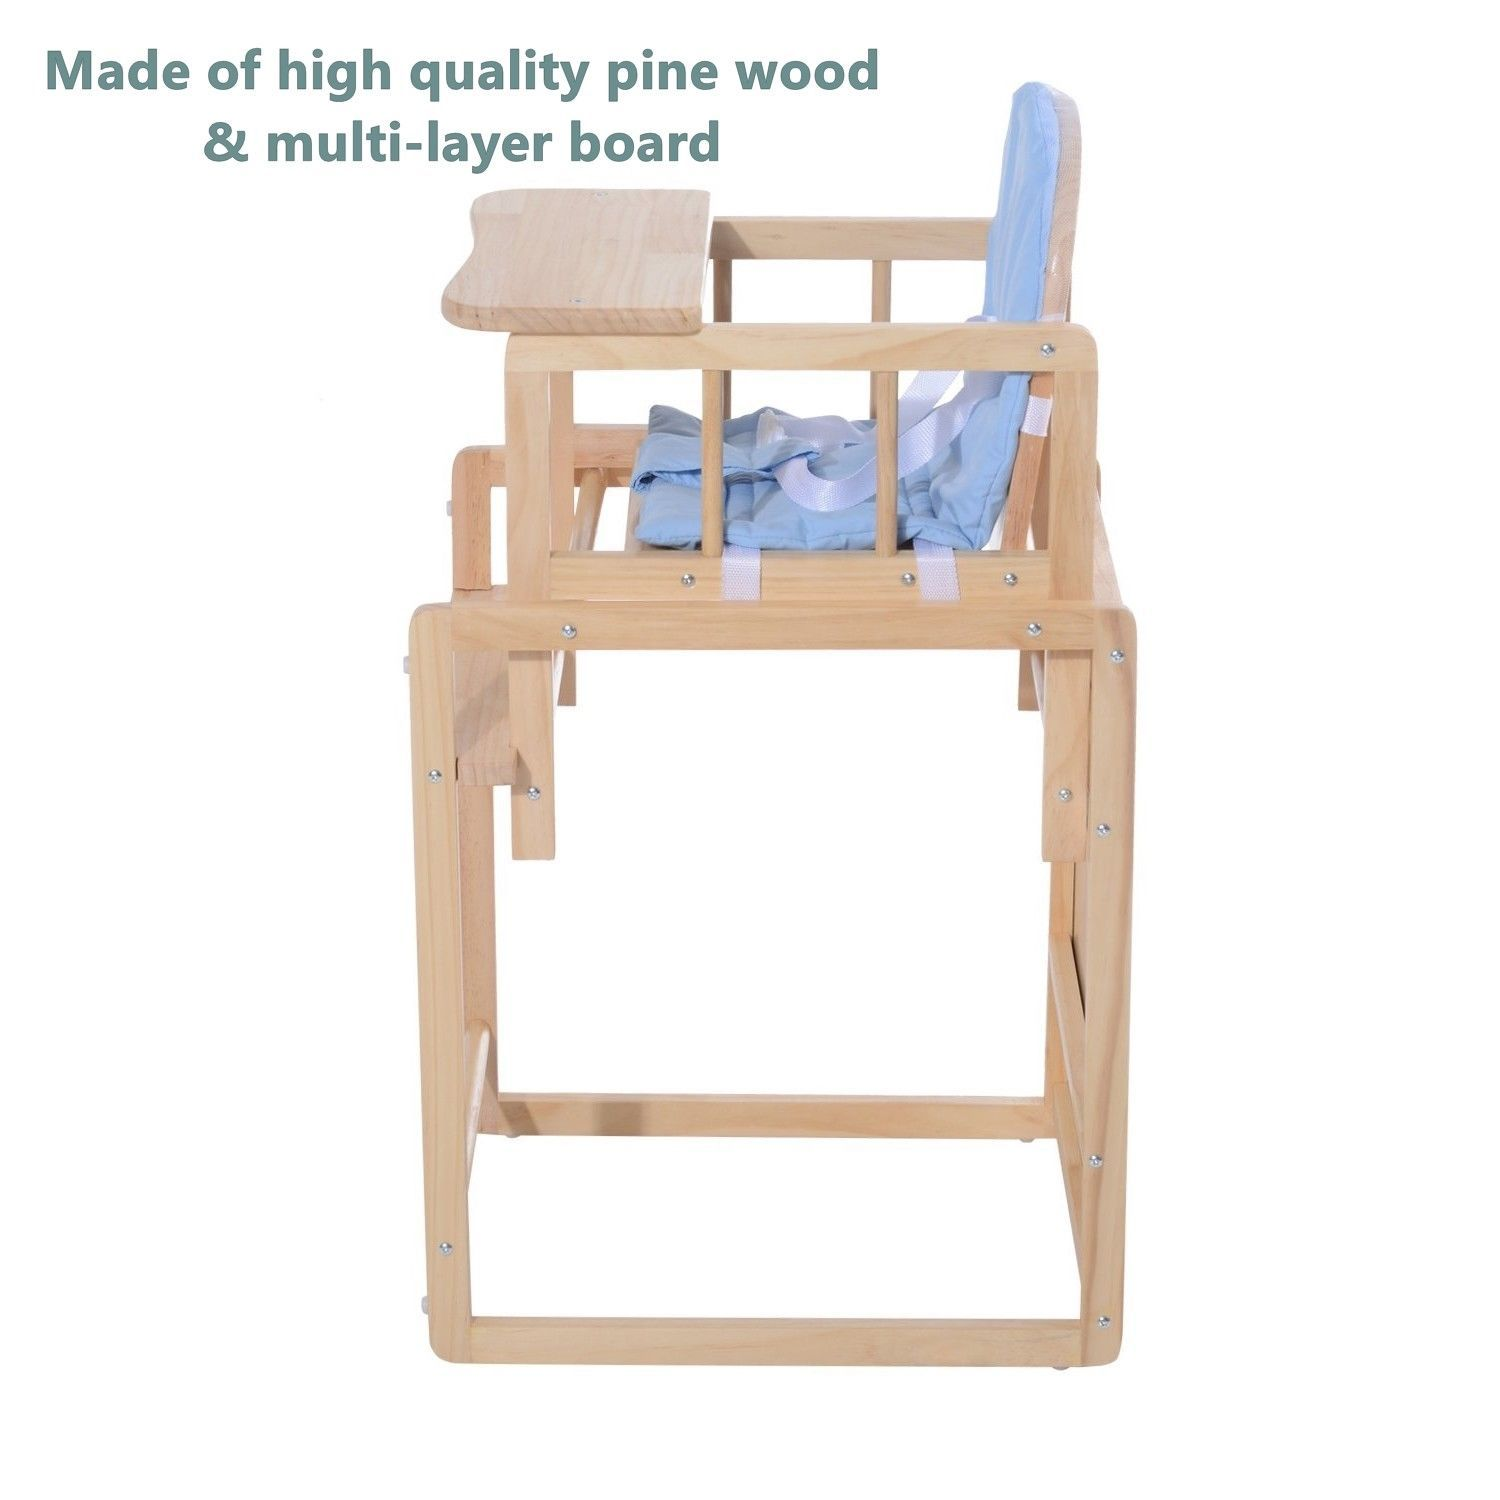 Superb 2 In 1 Baby Wooden Feeding High Chair And 50 Similar Items Andrewgaddart Wooden Chair Designs For Living Room Andrewgaddartcom